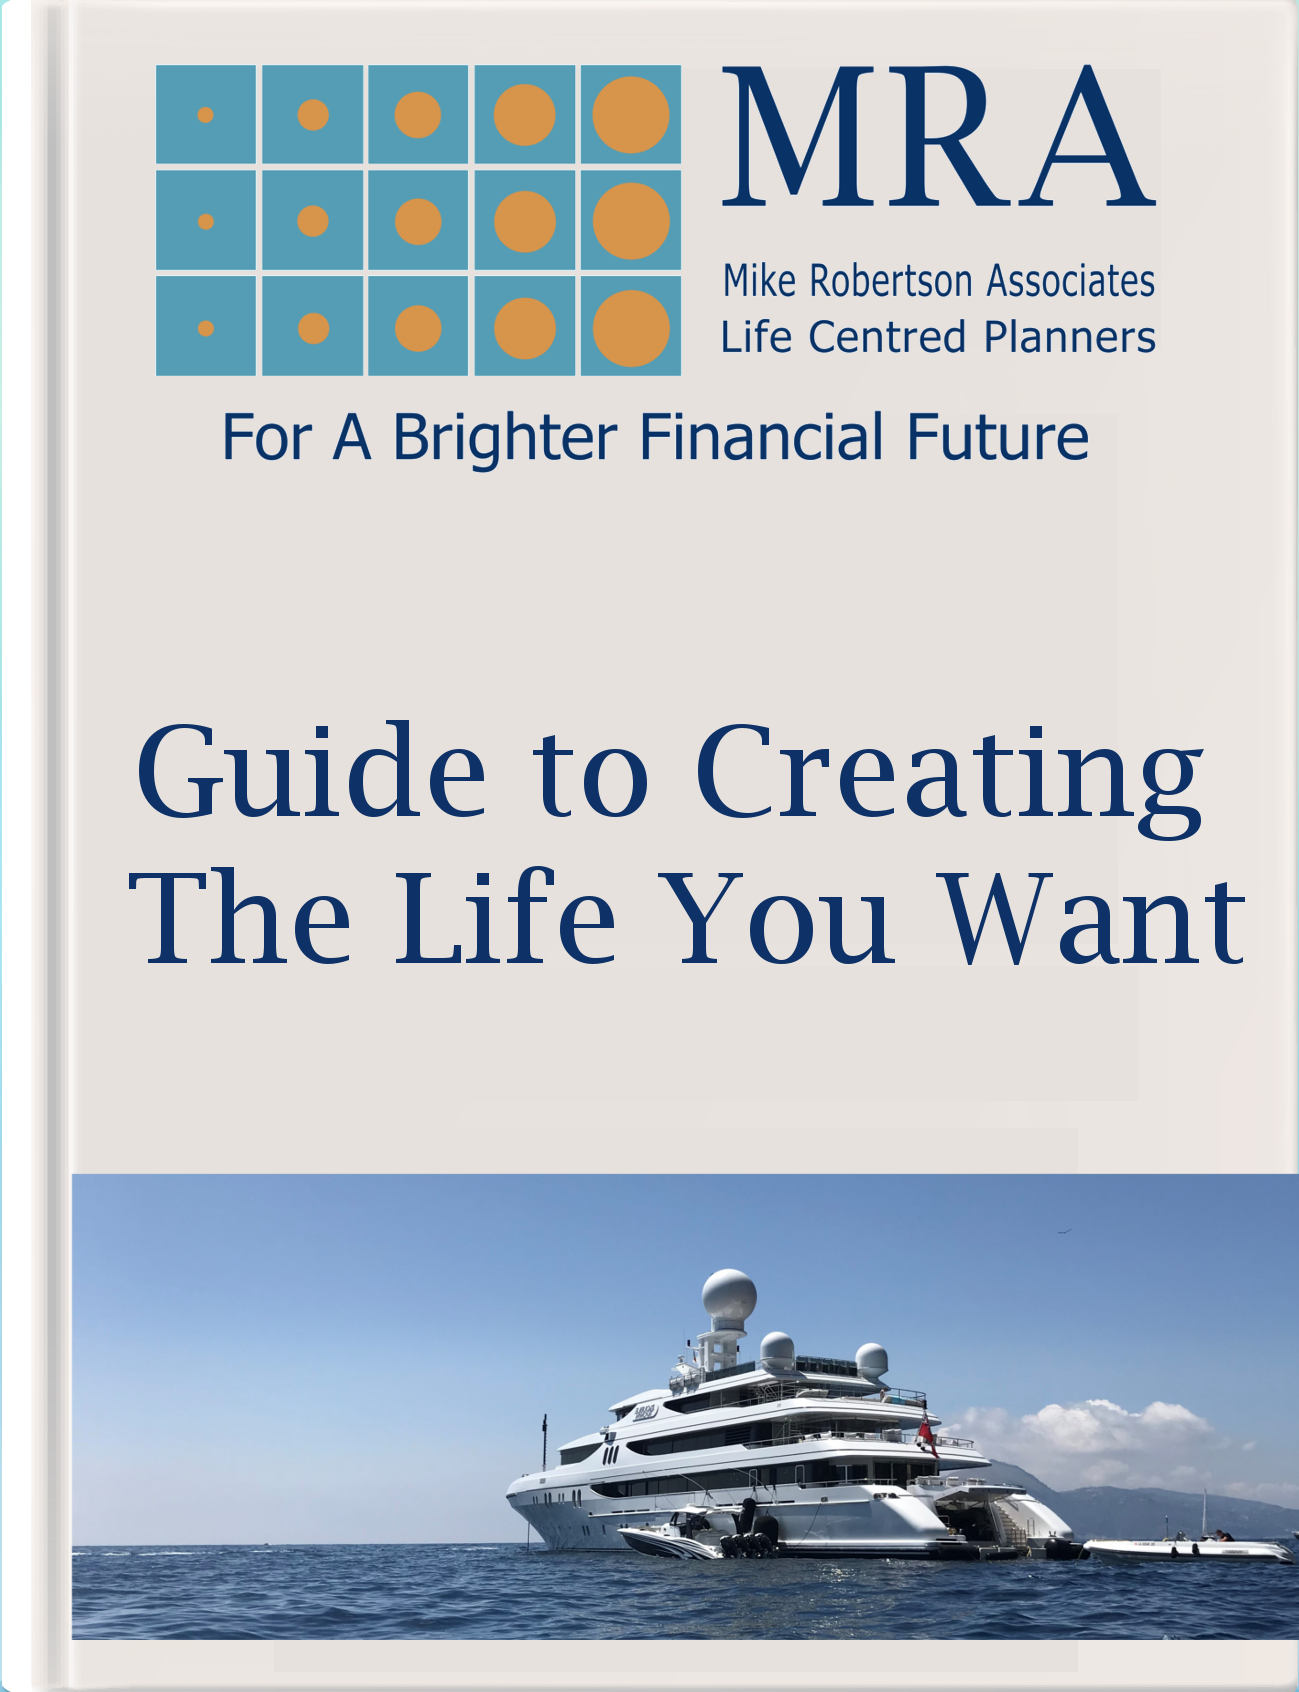 Download our Guide to Creating the Life You Want & Life Centred Financial Planning. Independent Financial Adviser, Independent Financial Planners, Financial Planning, Personal Financial Planning, Personal Finances, Pensions, Retirement Planning, Tax Planning, Cash Flow Budgeting, Banking, Insurance, Mortgages, Savings, Investments, Estate Planning, Later Life Forecasting, Investment Portfolio, Financial Guidance, Financial Advice, Financial Security, Family Protection, Tax Efficient Investments, Saving For Long Term Goals, Life Centred Financial Planning, Life Centred Financial Advice, Life Centred Financial Planners, Life Centred Adviser, Life Centred Advisor, Lifestyle Financial Advisor, Lifestyle Financial Adviser, Lifestyle Financial Planners, Lifestyle Financial Planning